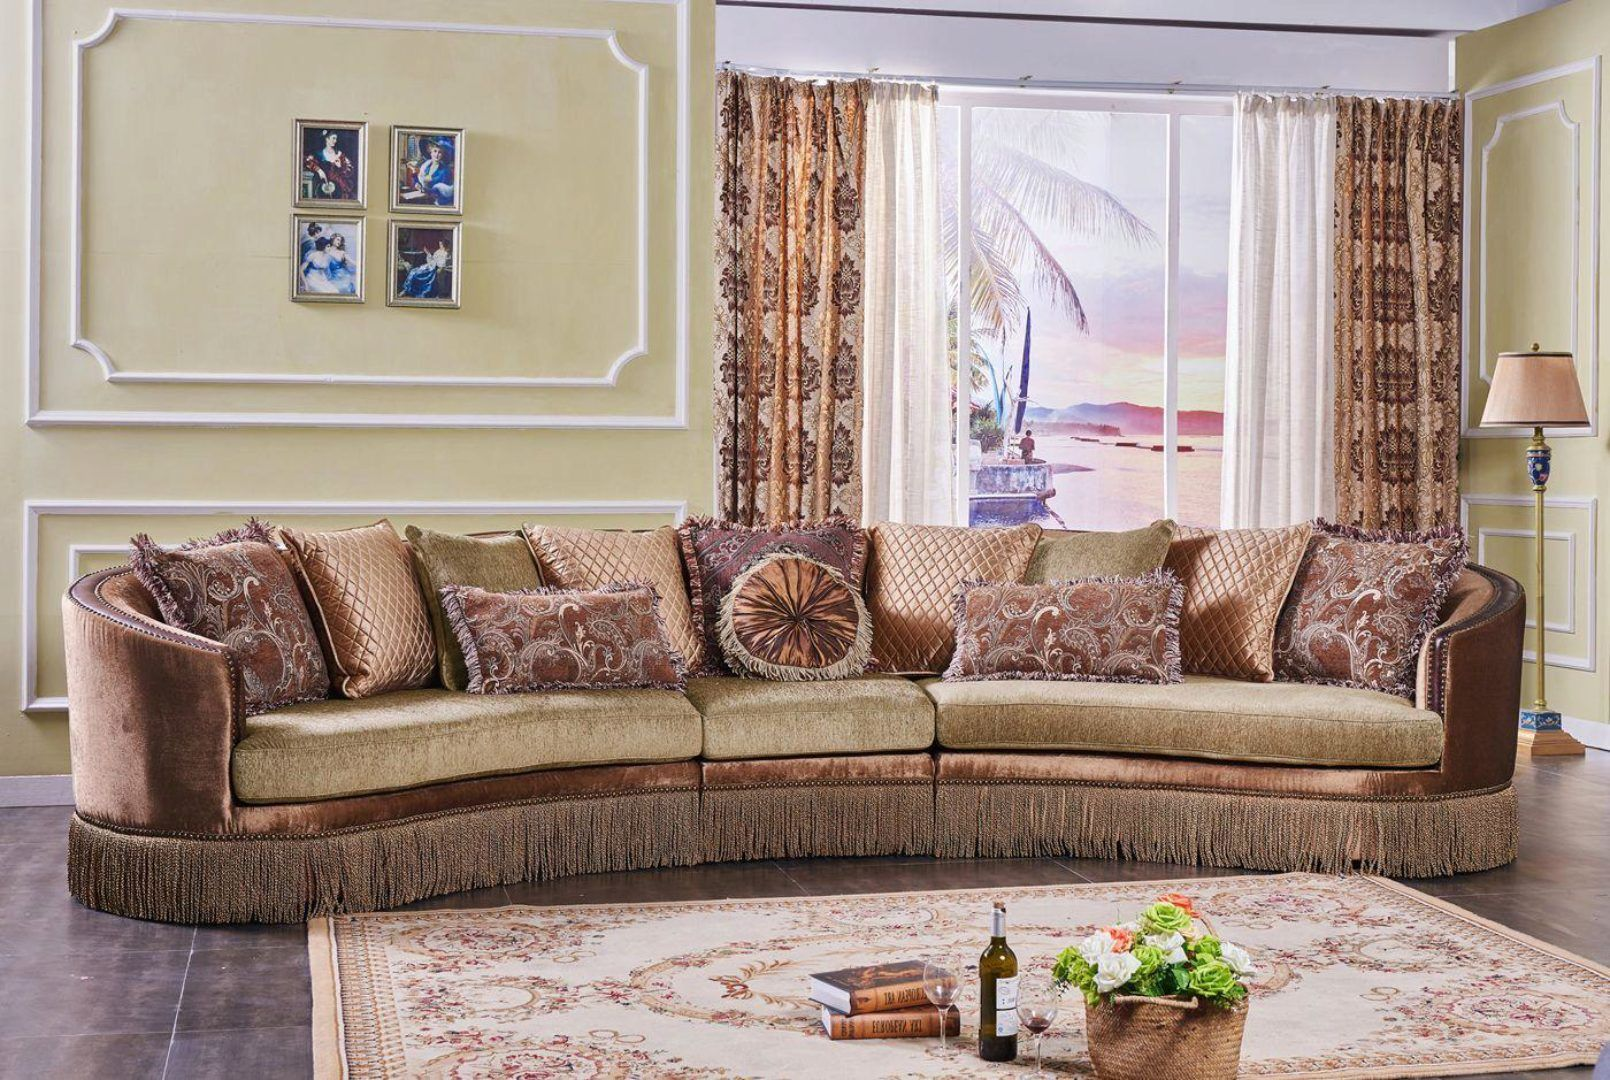 Traditional Curved Sectional Sofa W Accent Pillows 3pcs Mcferran Sf4160 Sf4160 Sectional Sofas Living Room Curved Sectional Sofa Sectional Sofa